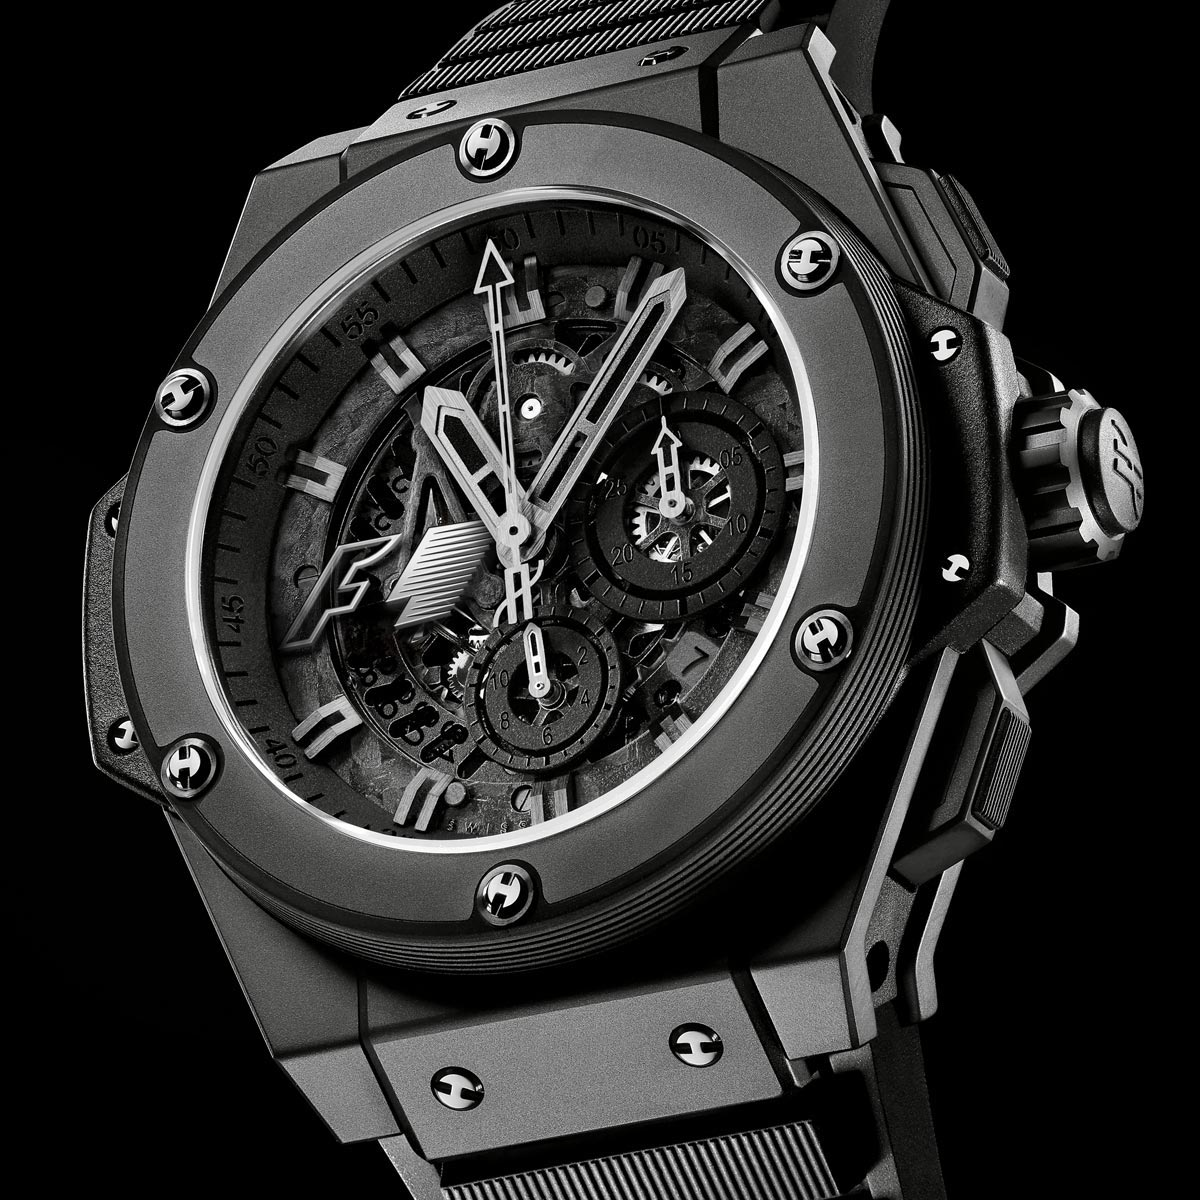 Hublot Watches F1